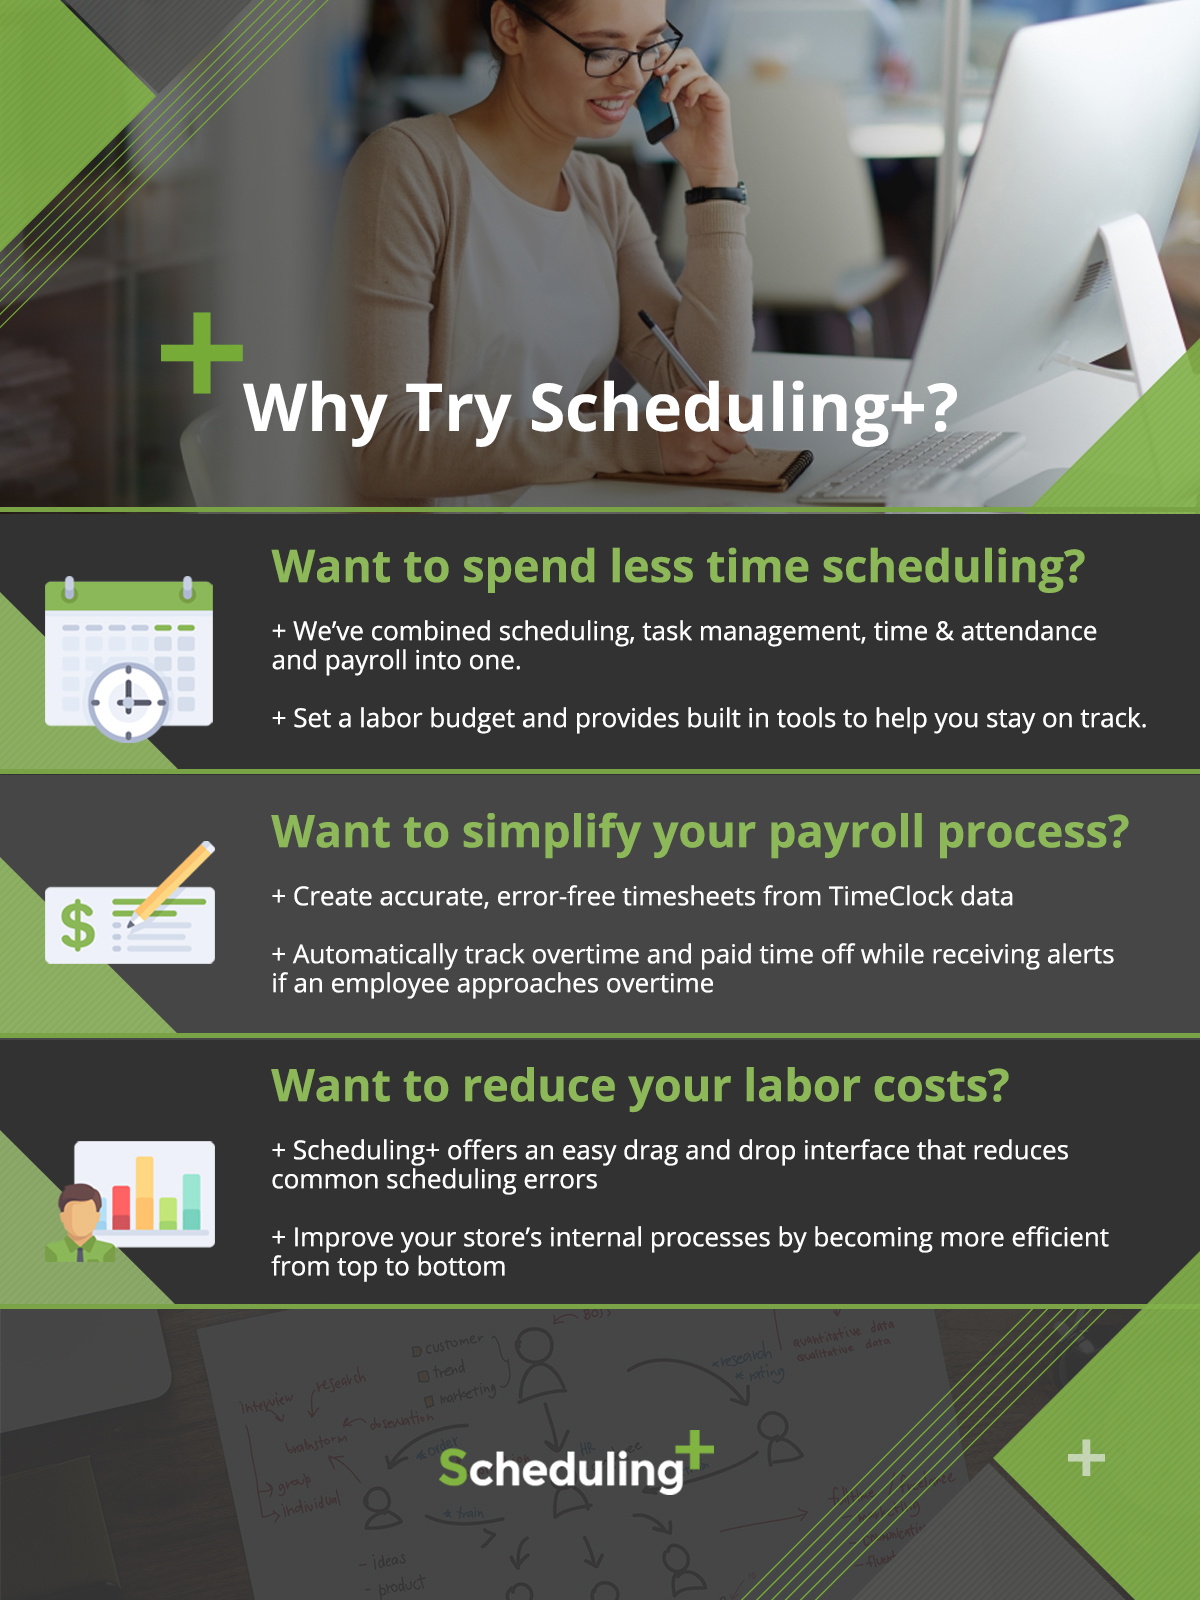 Why Try Scheduling